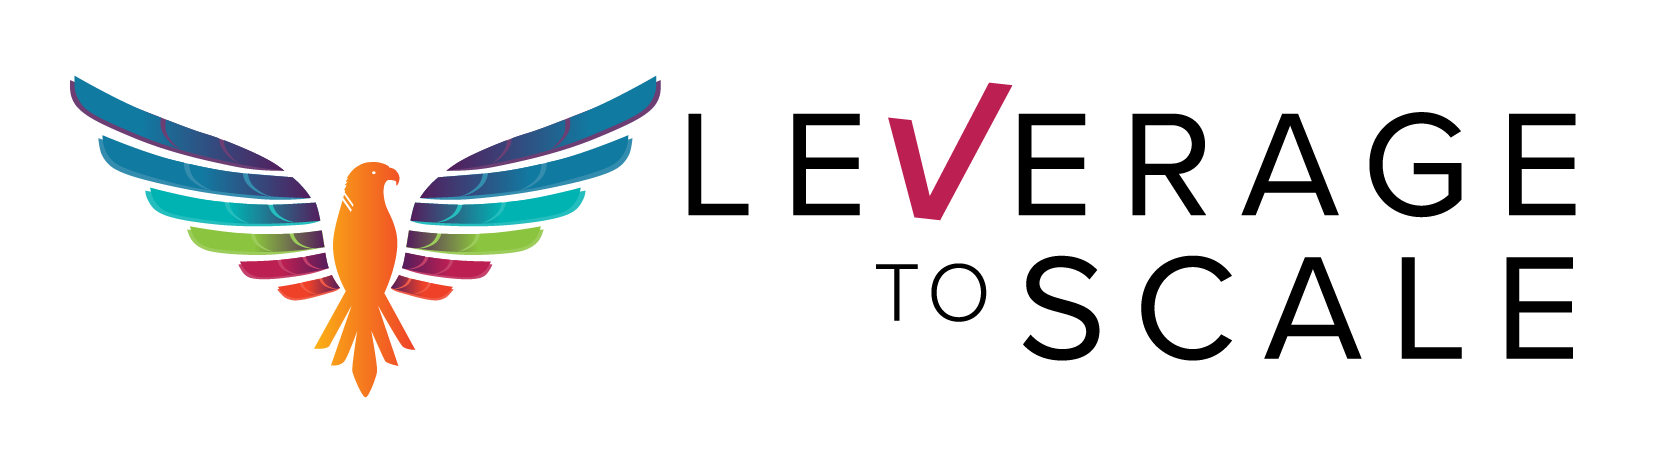 leverage-to-scale-logo-fullcolor